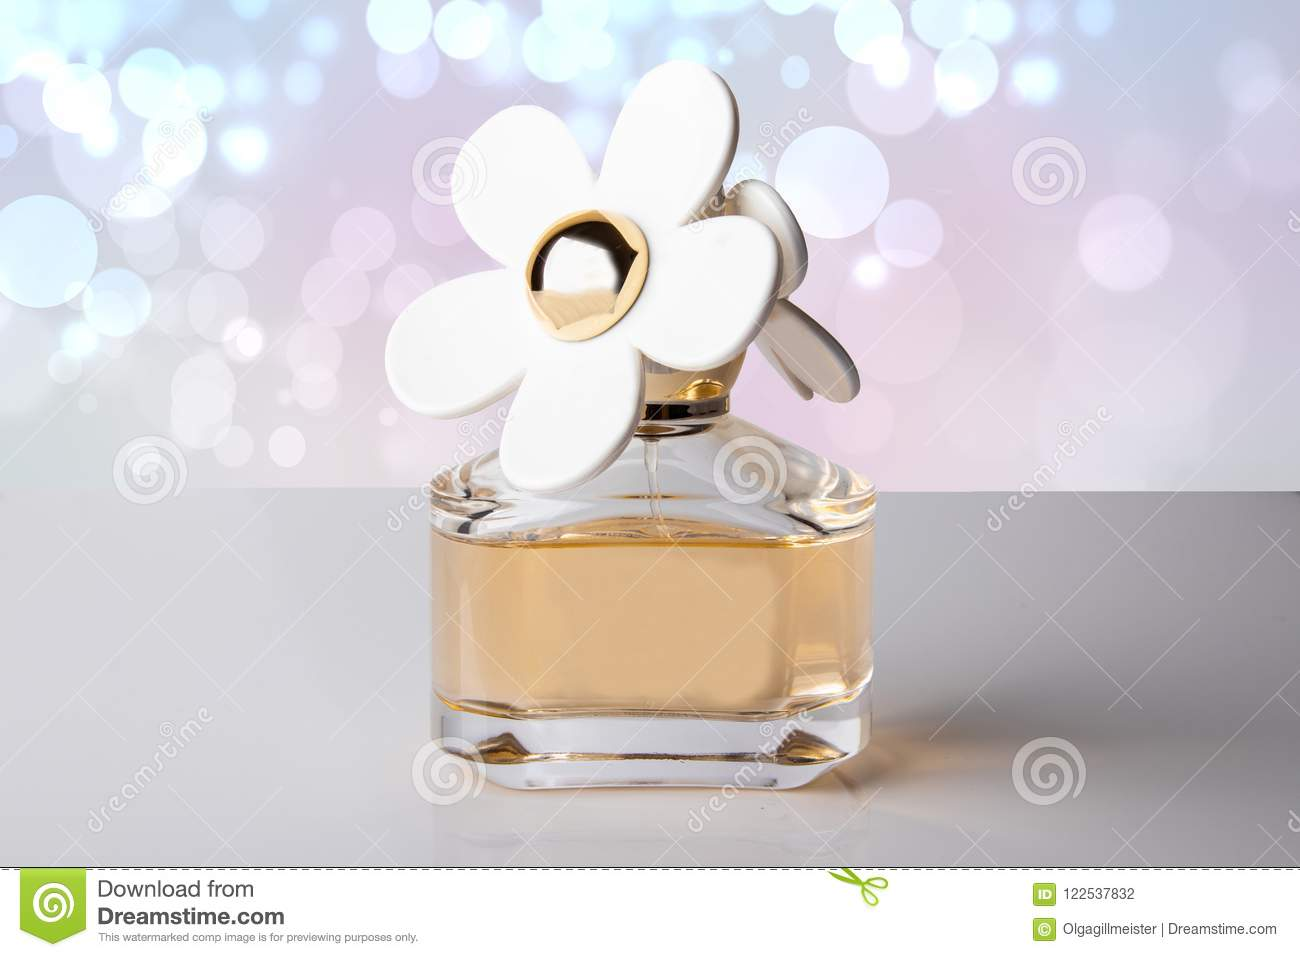 Luxurious Perfume In Beautiful Bottle With White Flowers As Perf